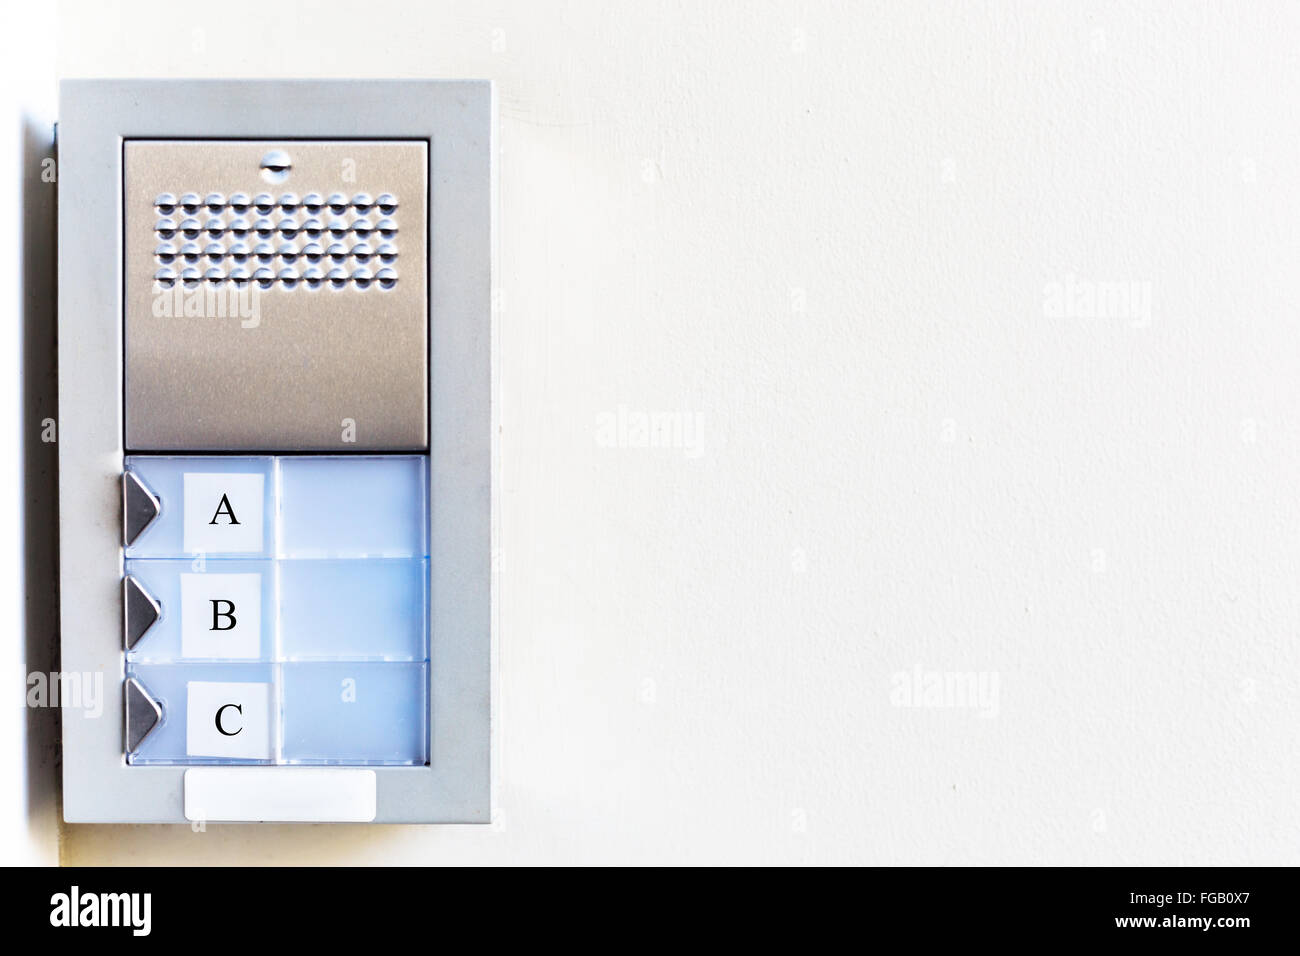 Silver door buzzer with 3 buttons labelled ABC on left, empty white wall on right of image. - Stock Image